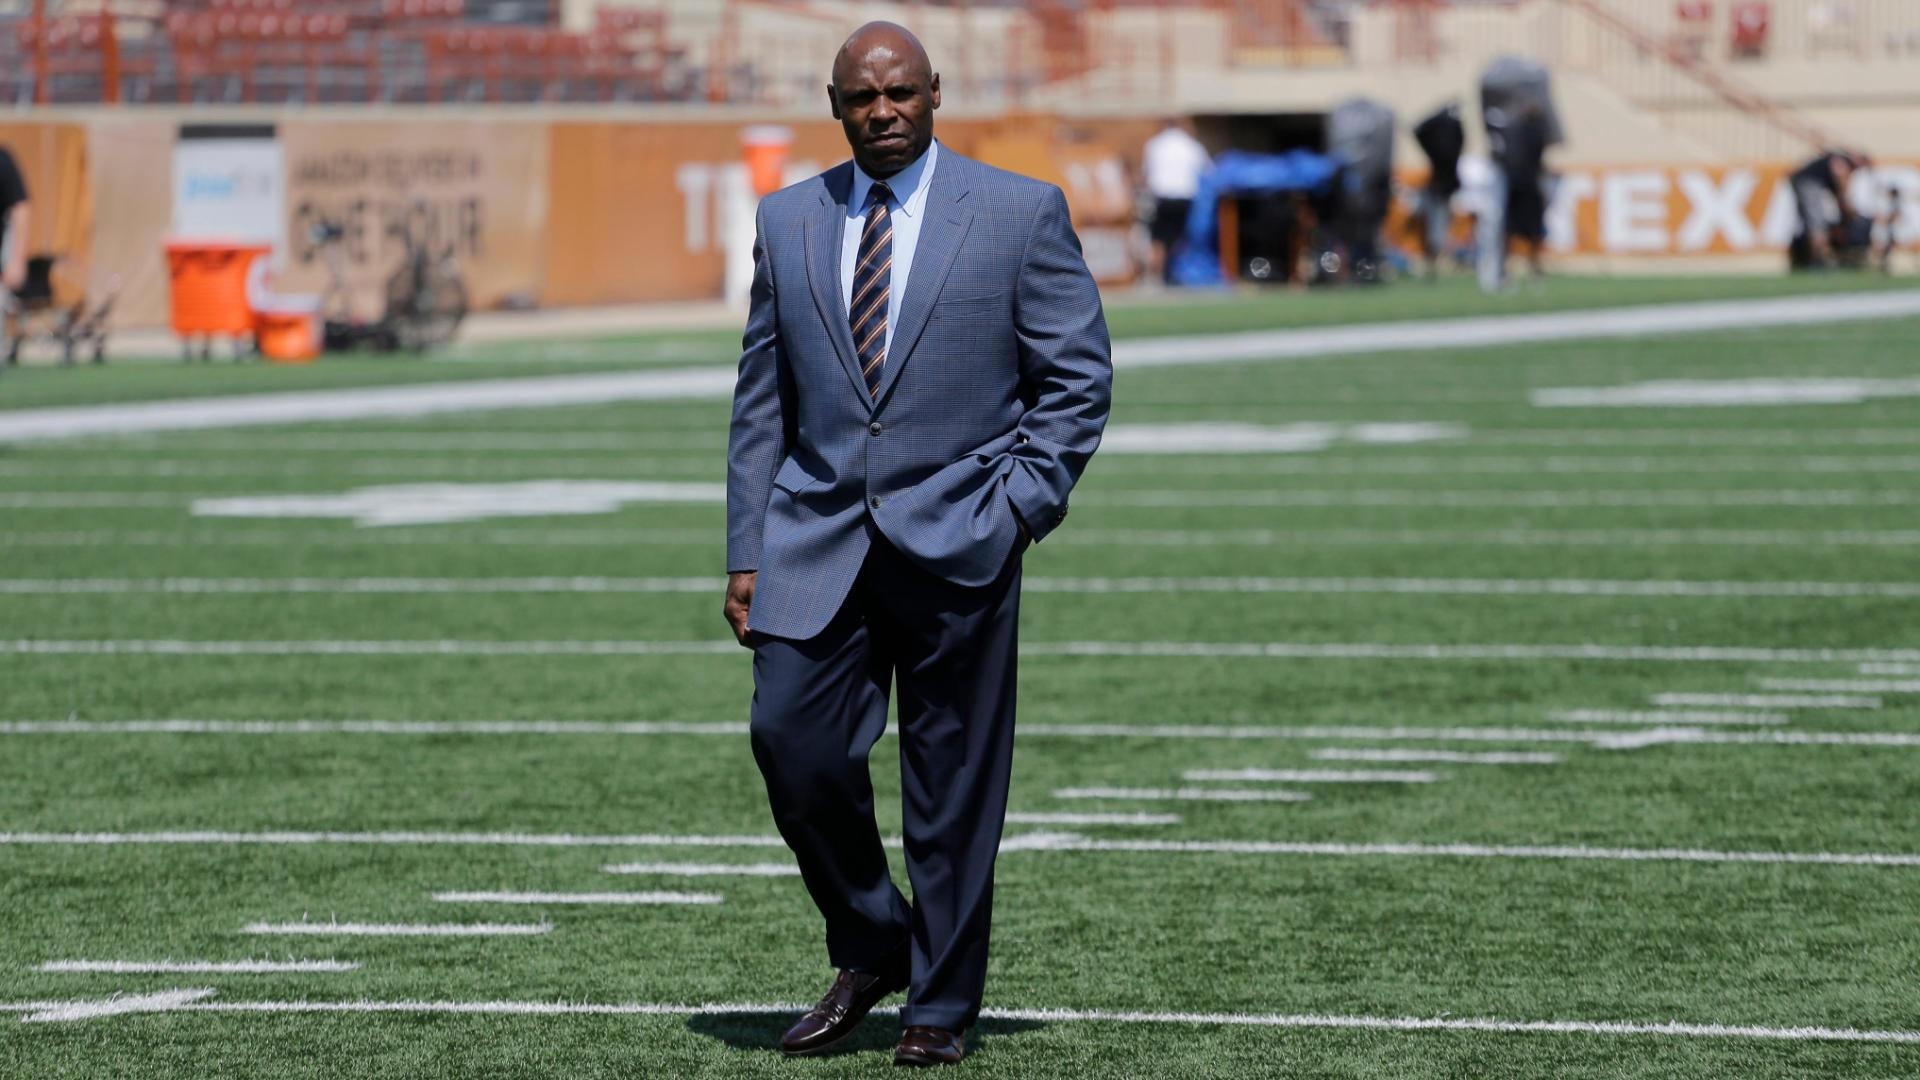 Does Charlie Strong survive until end of season?